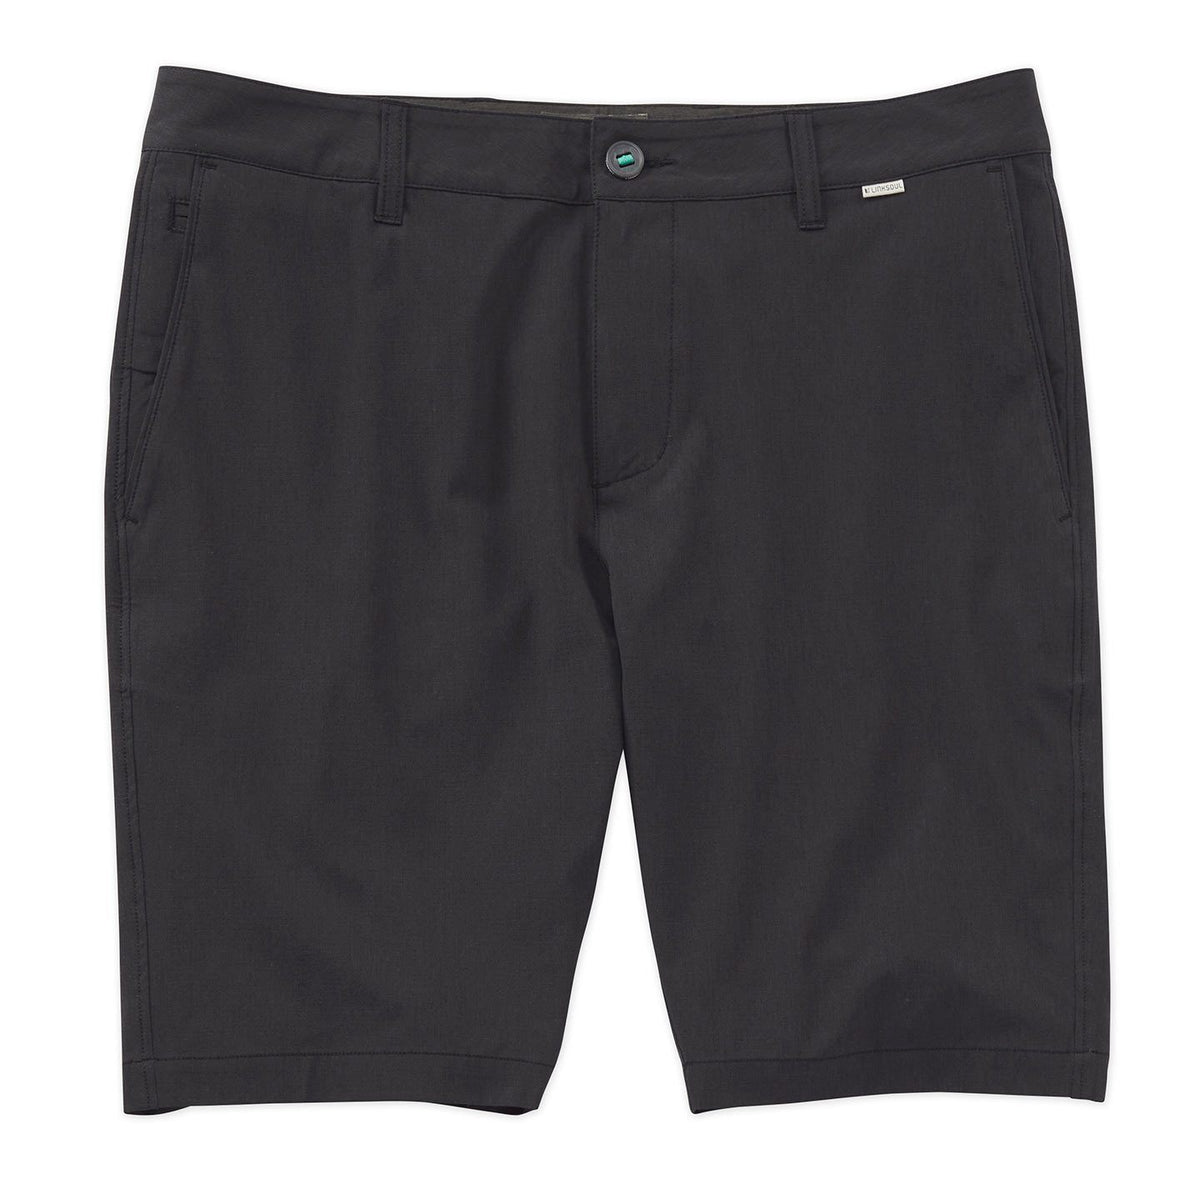 Boardwalker AC Short